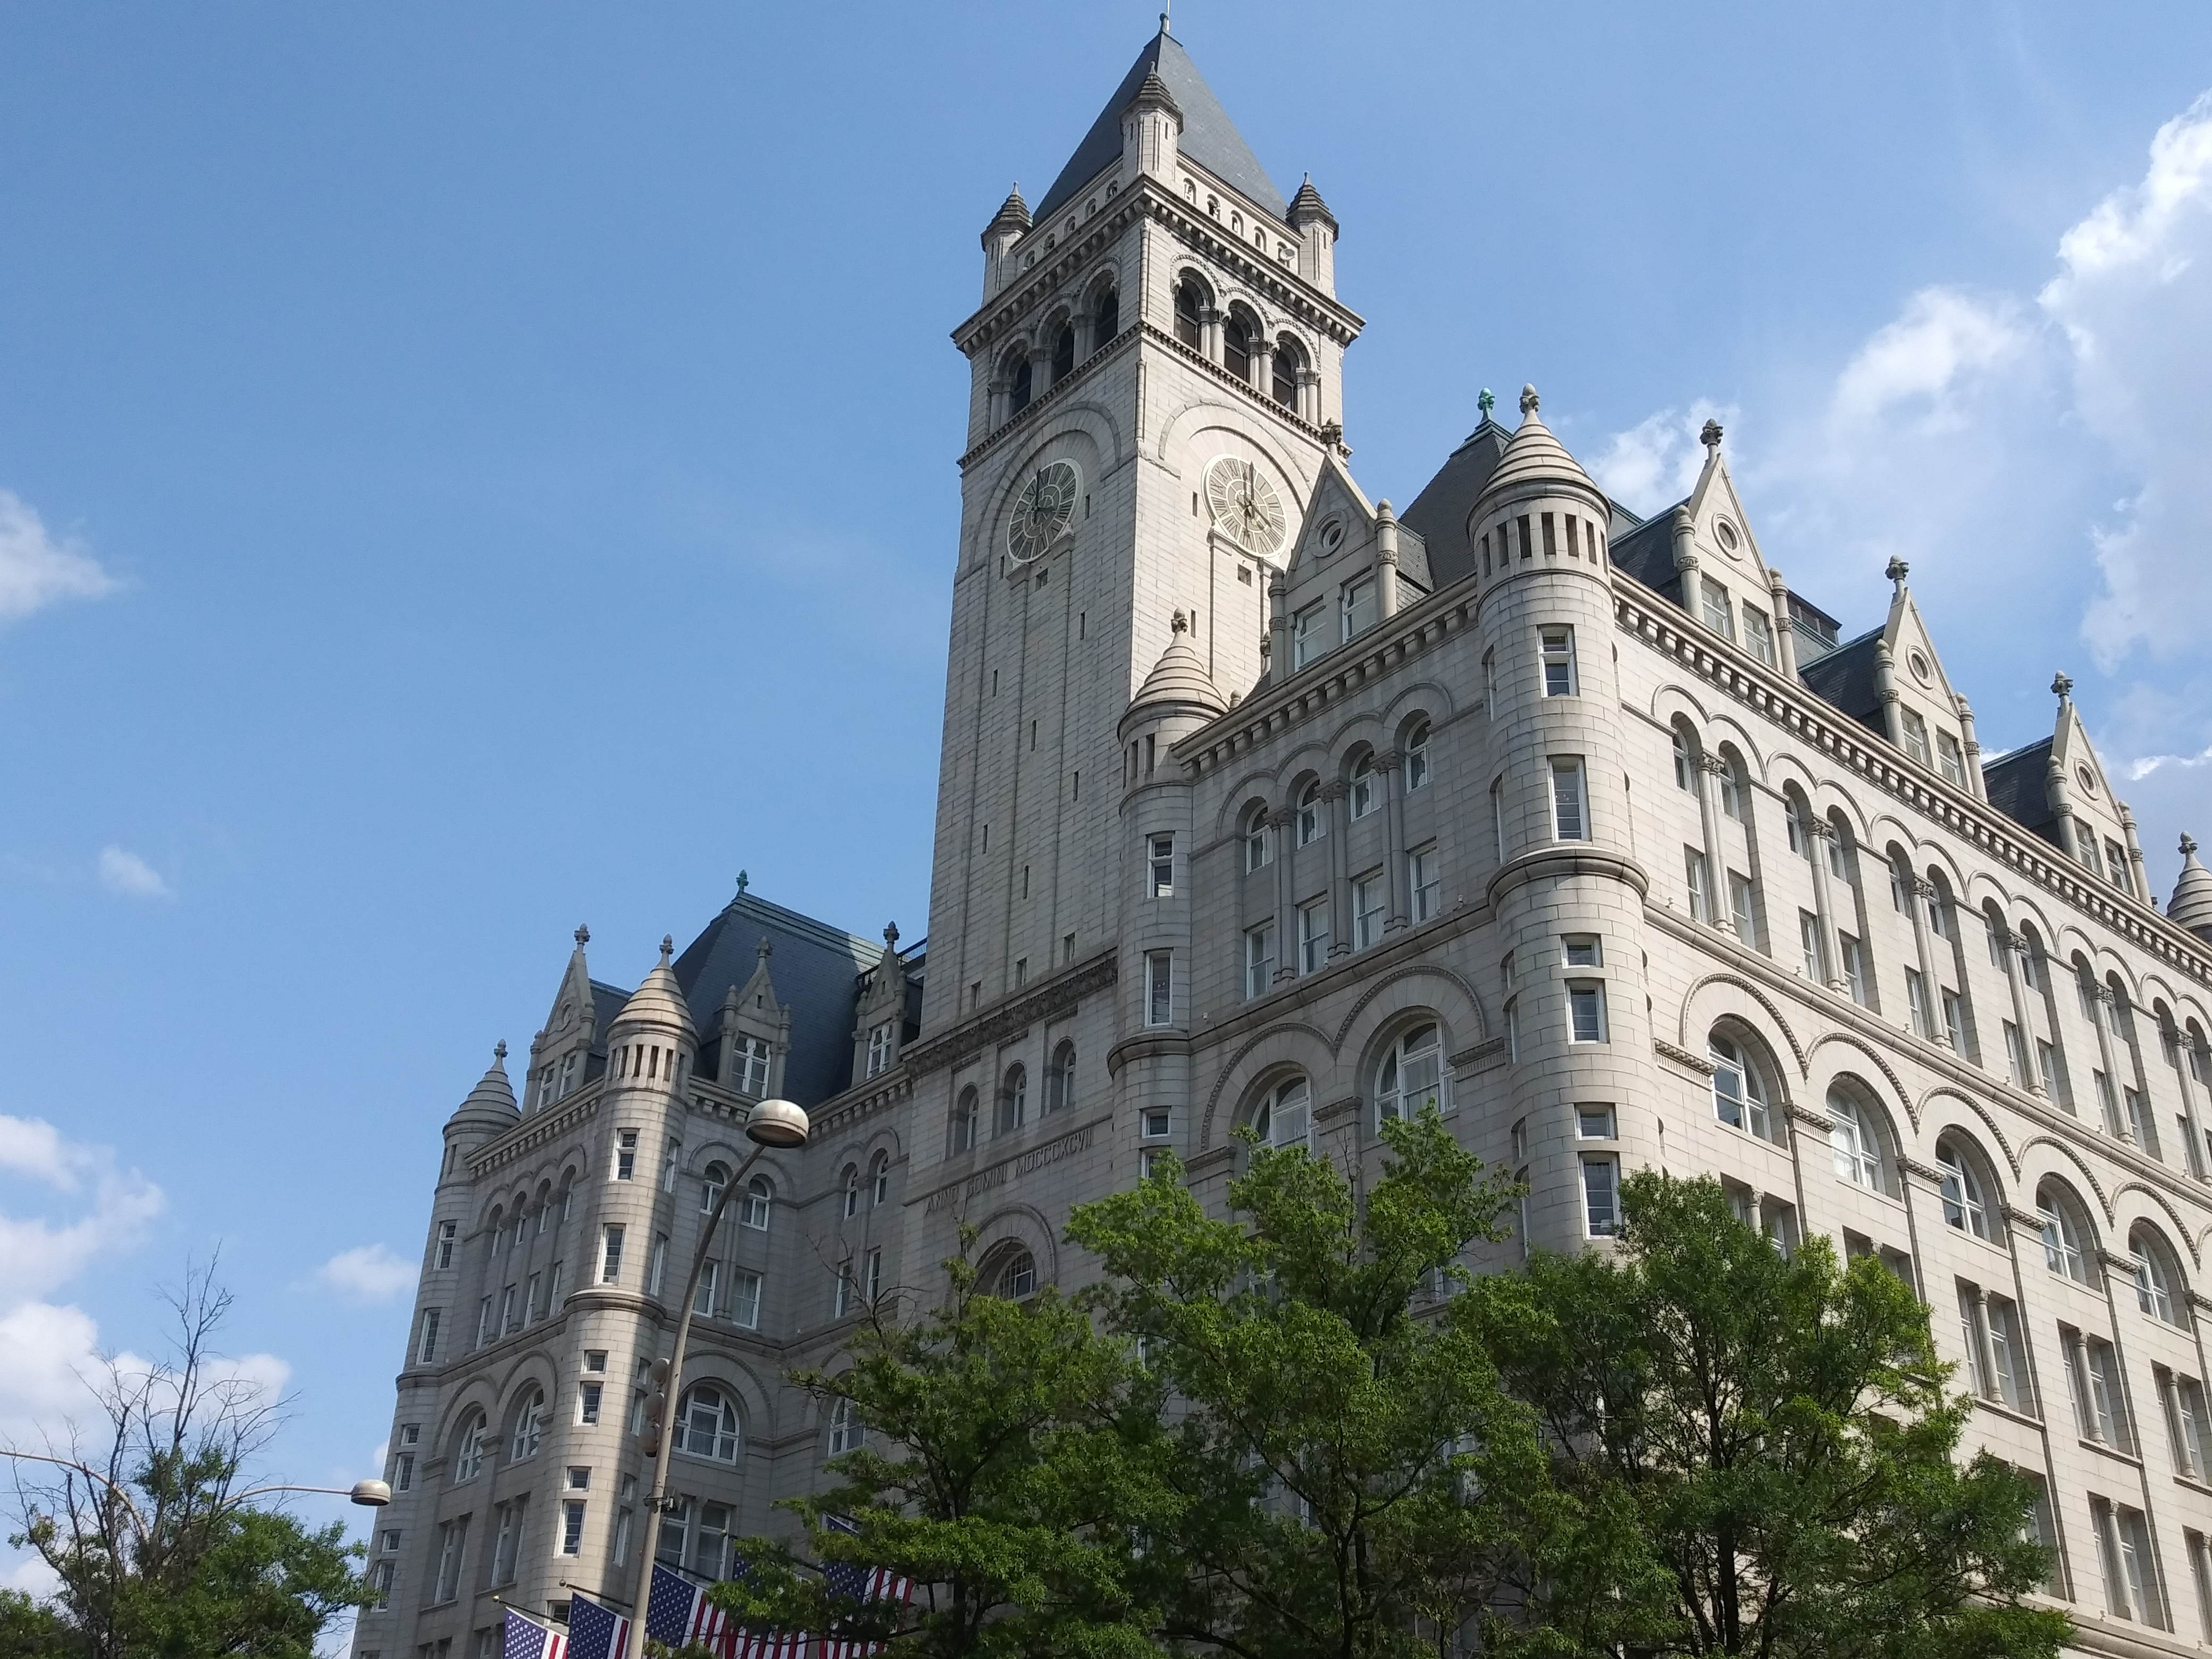 Old Post Office and Tower, Washington, D.C.